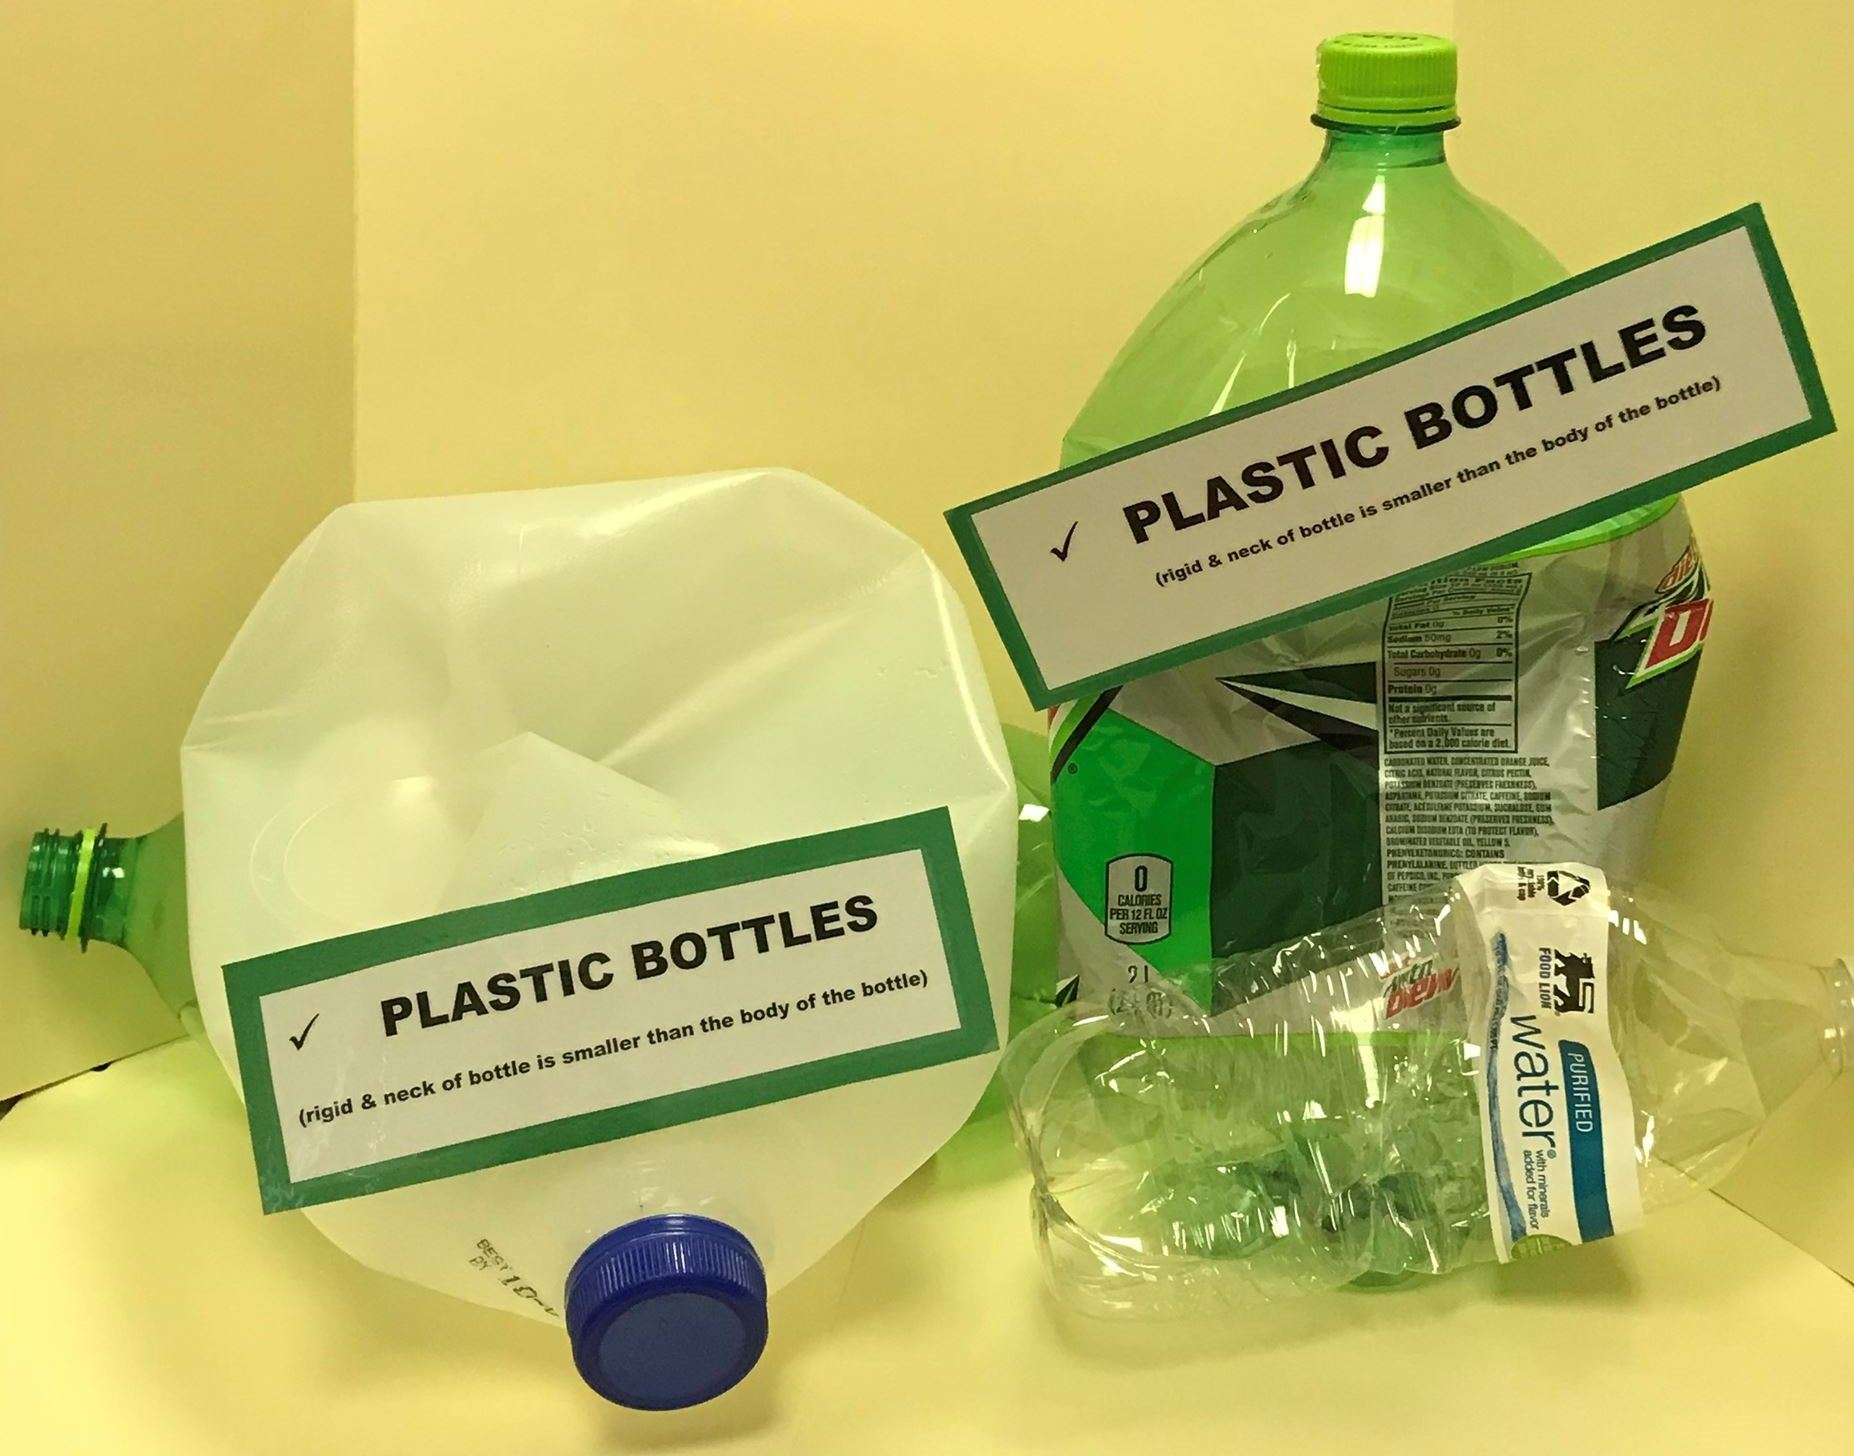 Rigid Plastic Bottles